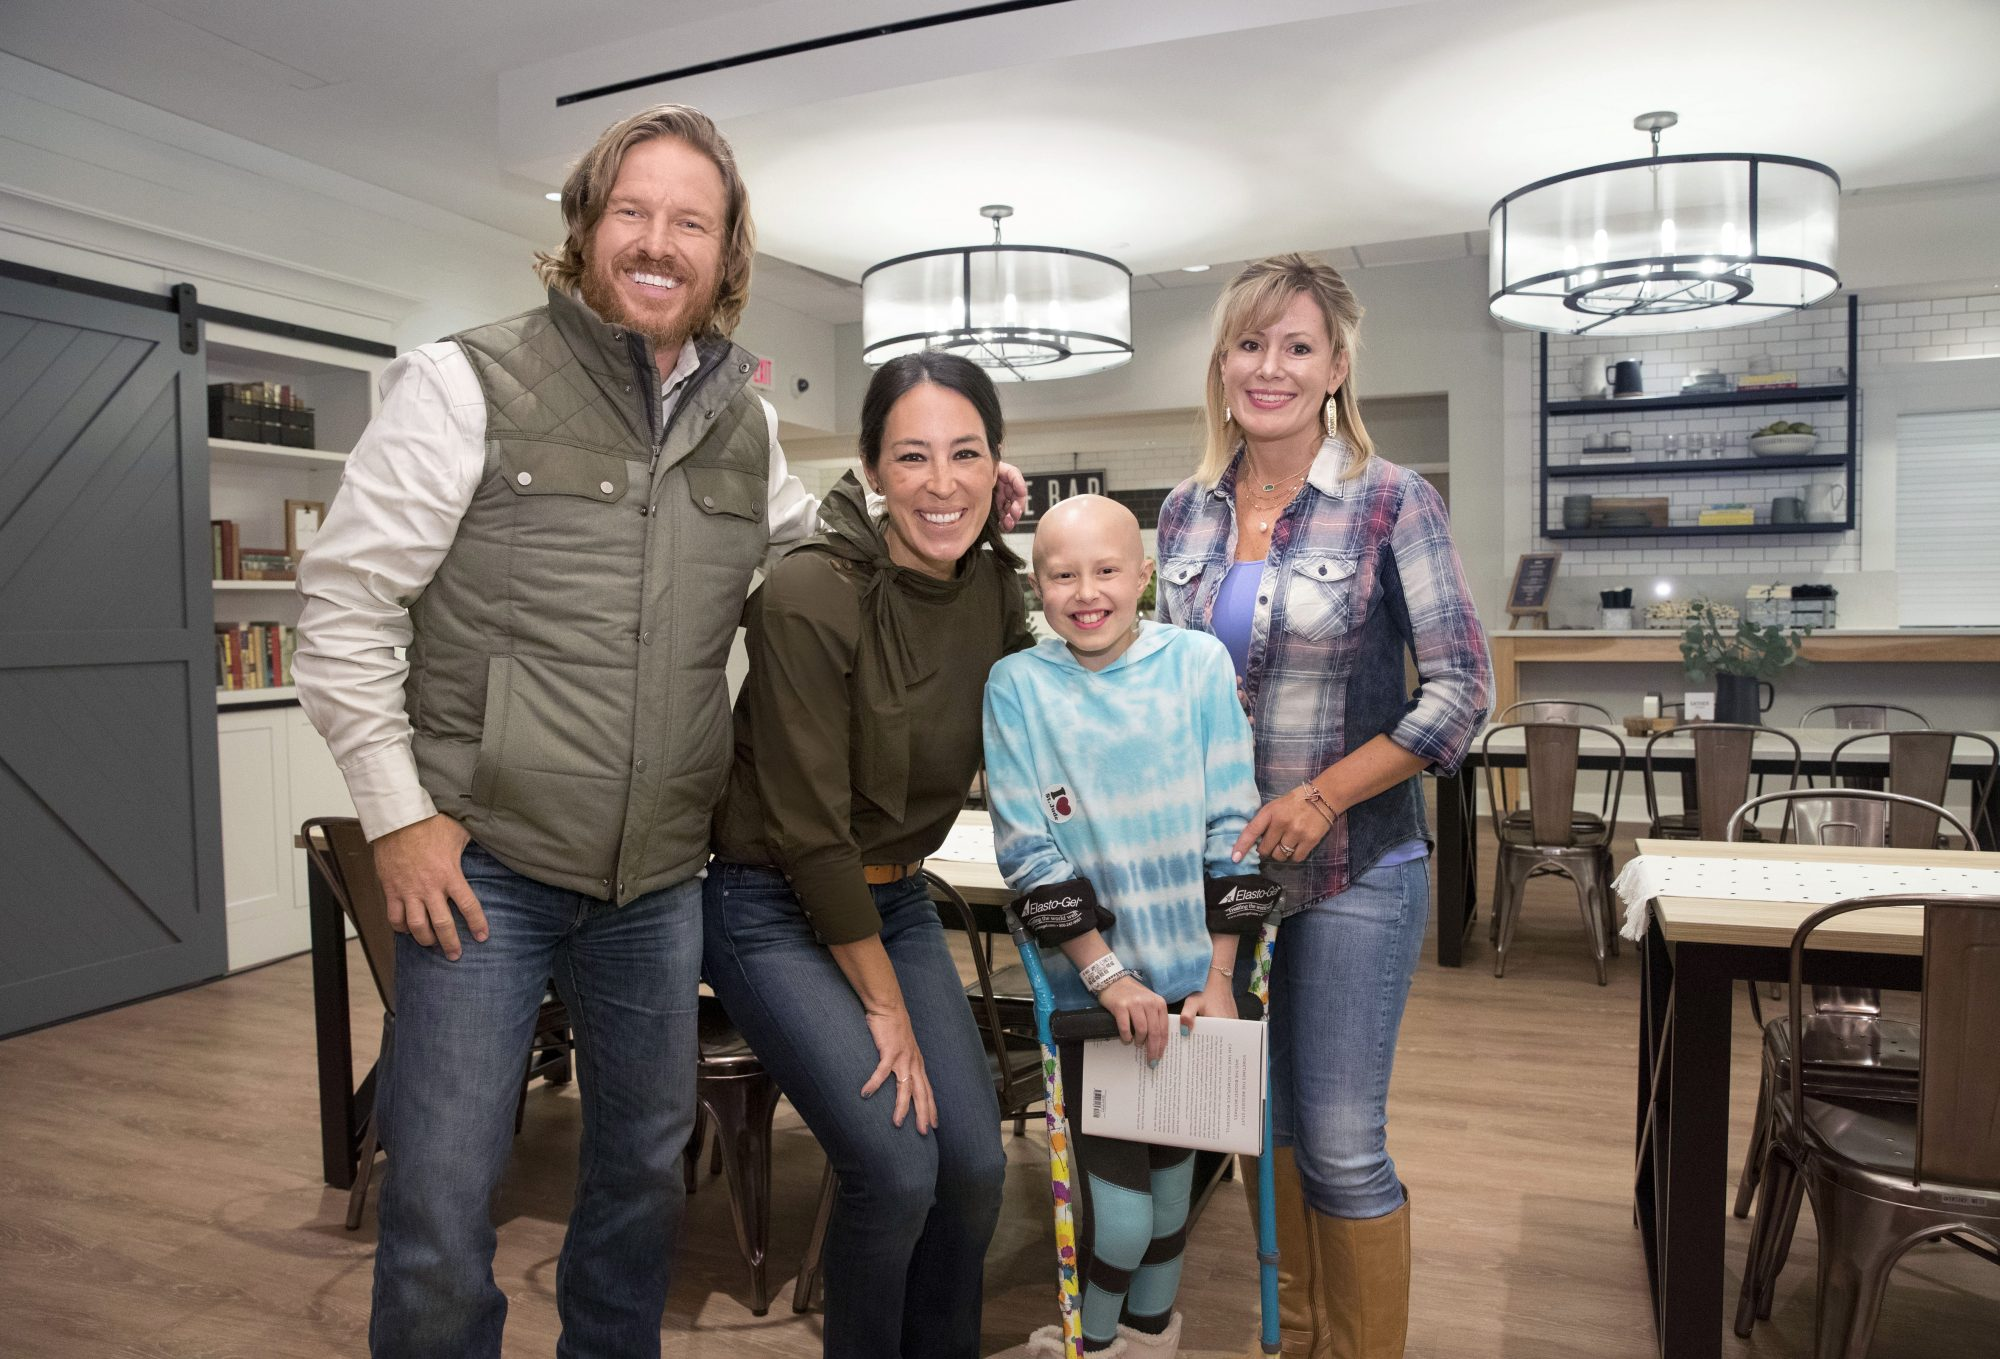 Chip and Joanna Gaines Wednesday, November 8, 2017.